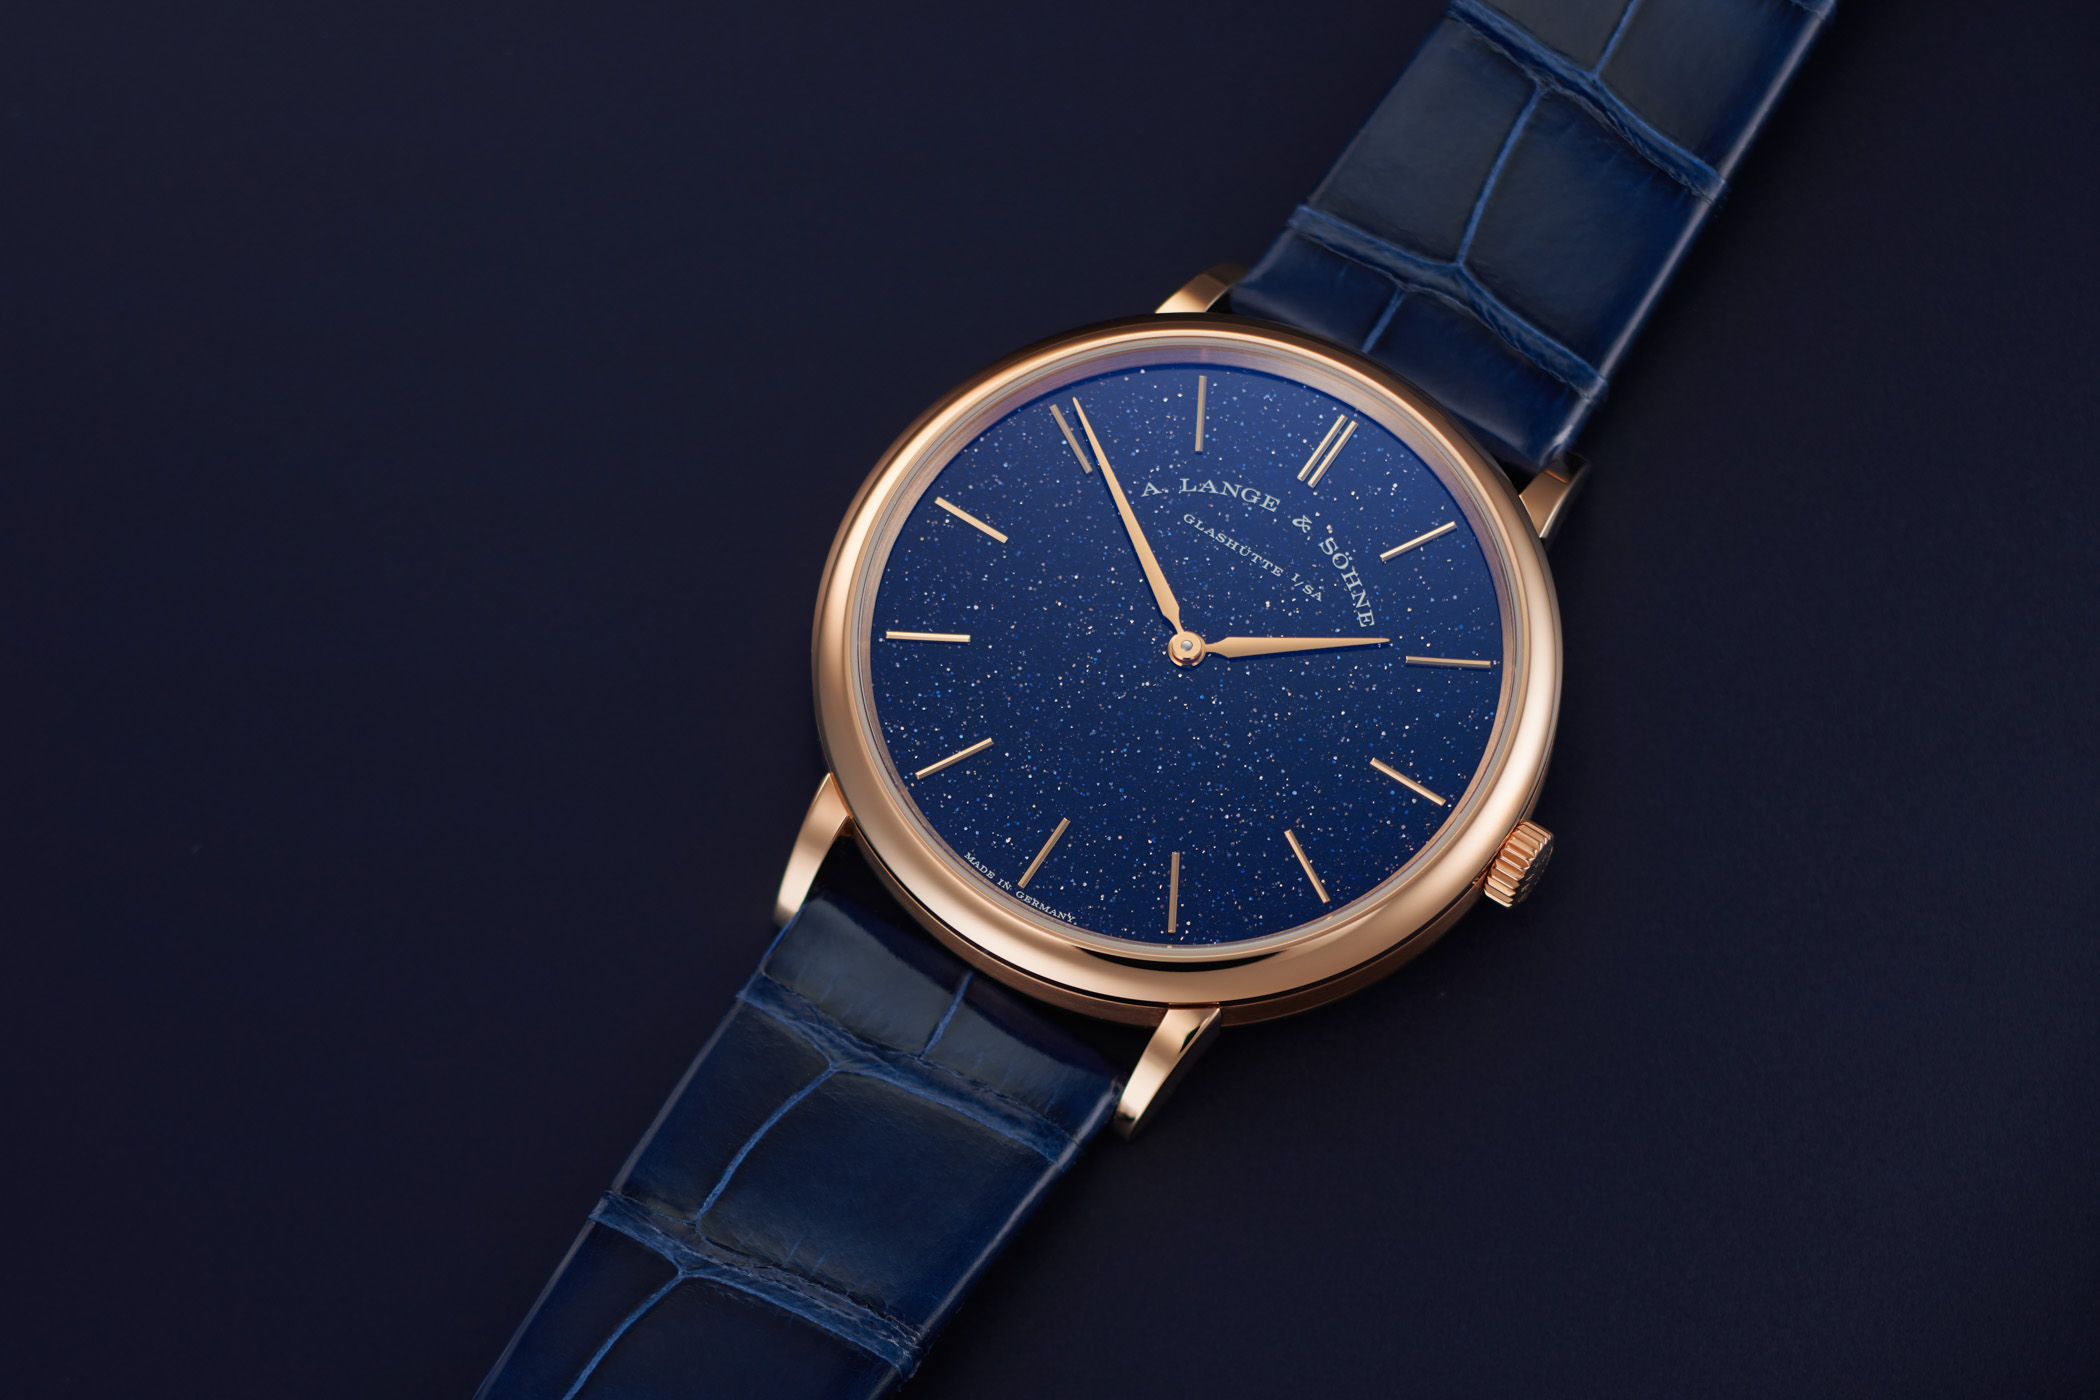 A Lange and Sohne Saxonia thin blue gold flux pink gold limited edition 211.088